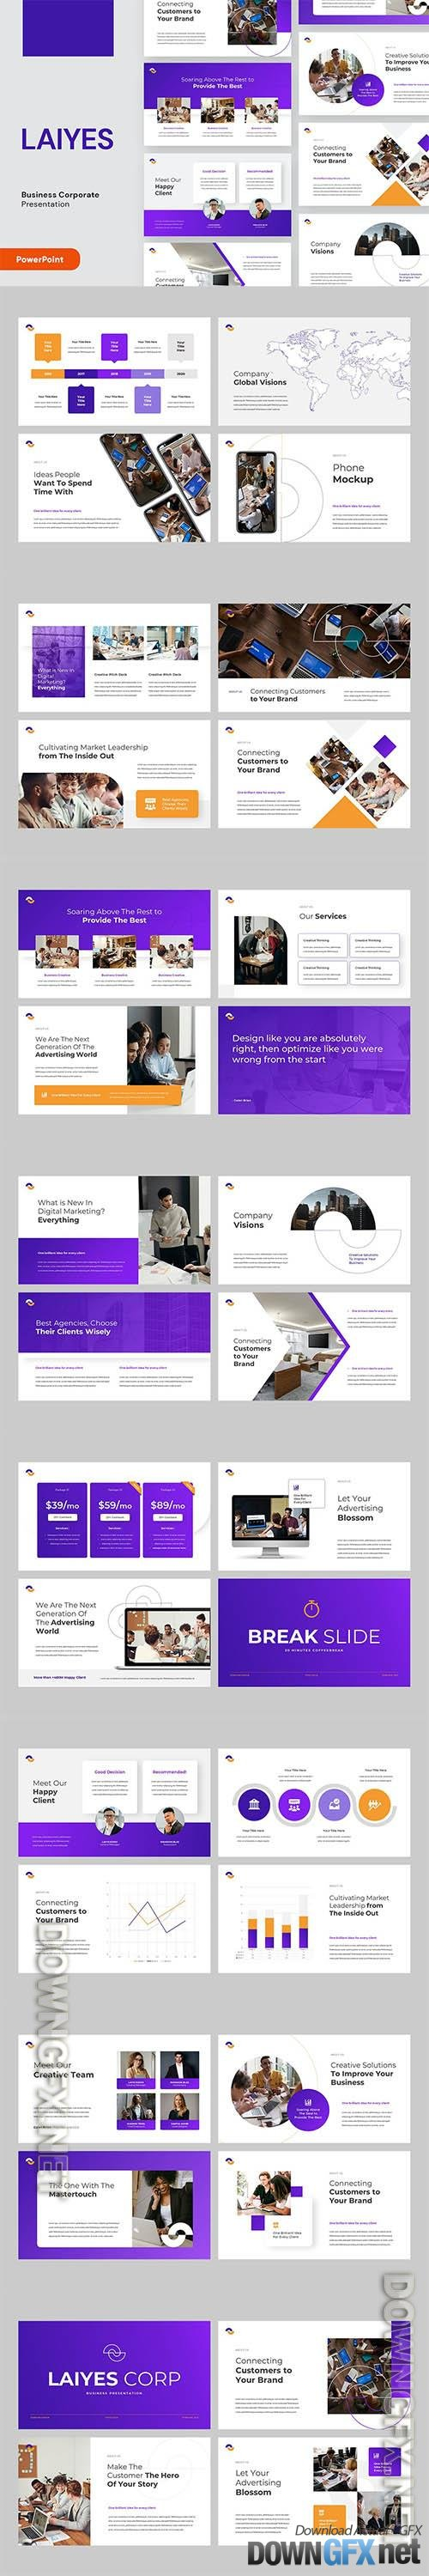 LAIYES - Business Pitch Deck Powerpoint, Keynote and Google Slides Template